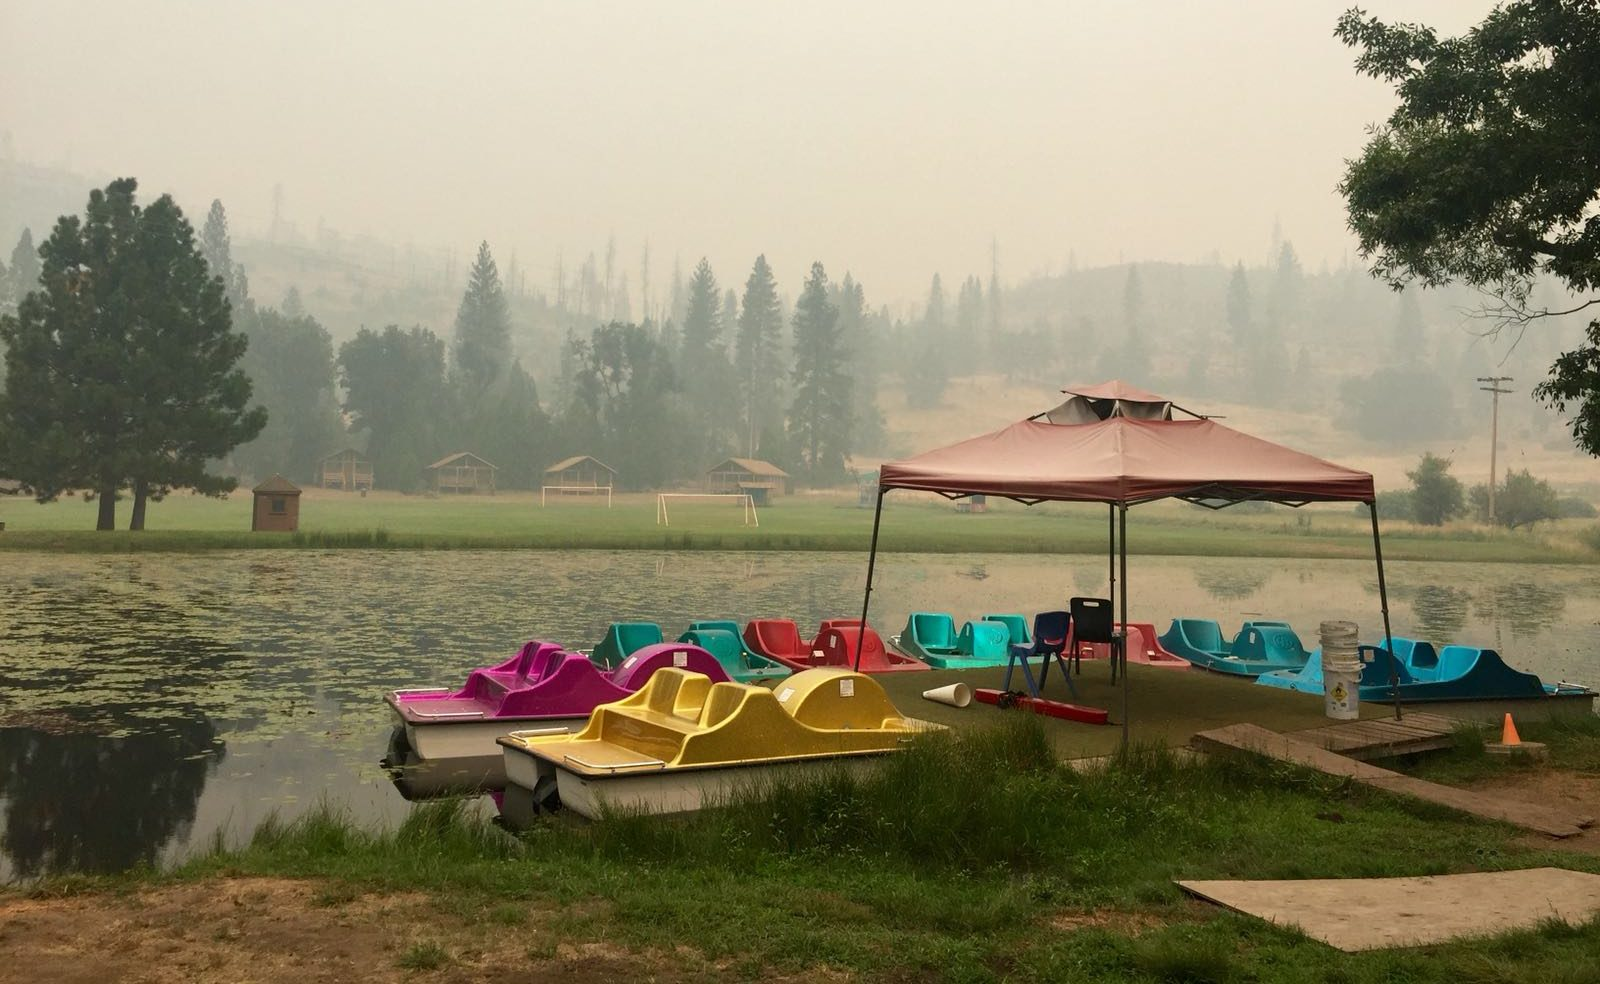 Camp Tawonga near Yosemite was evacuated July 30 over concerns about smoky air from the Ferguson Fire. (Photo/Camp Tawonga-Julia Rose Kibben)